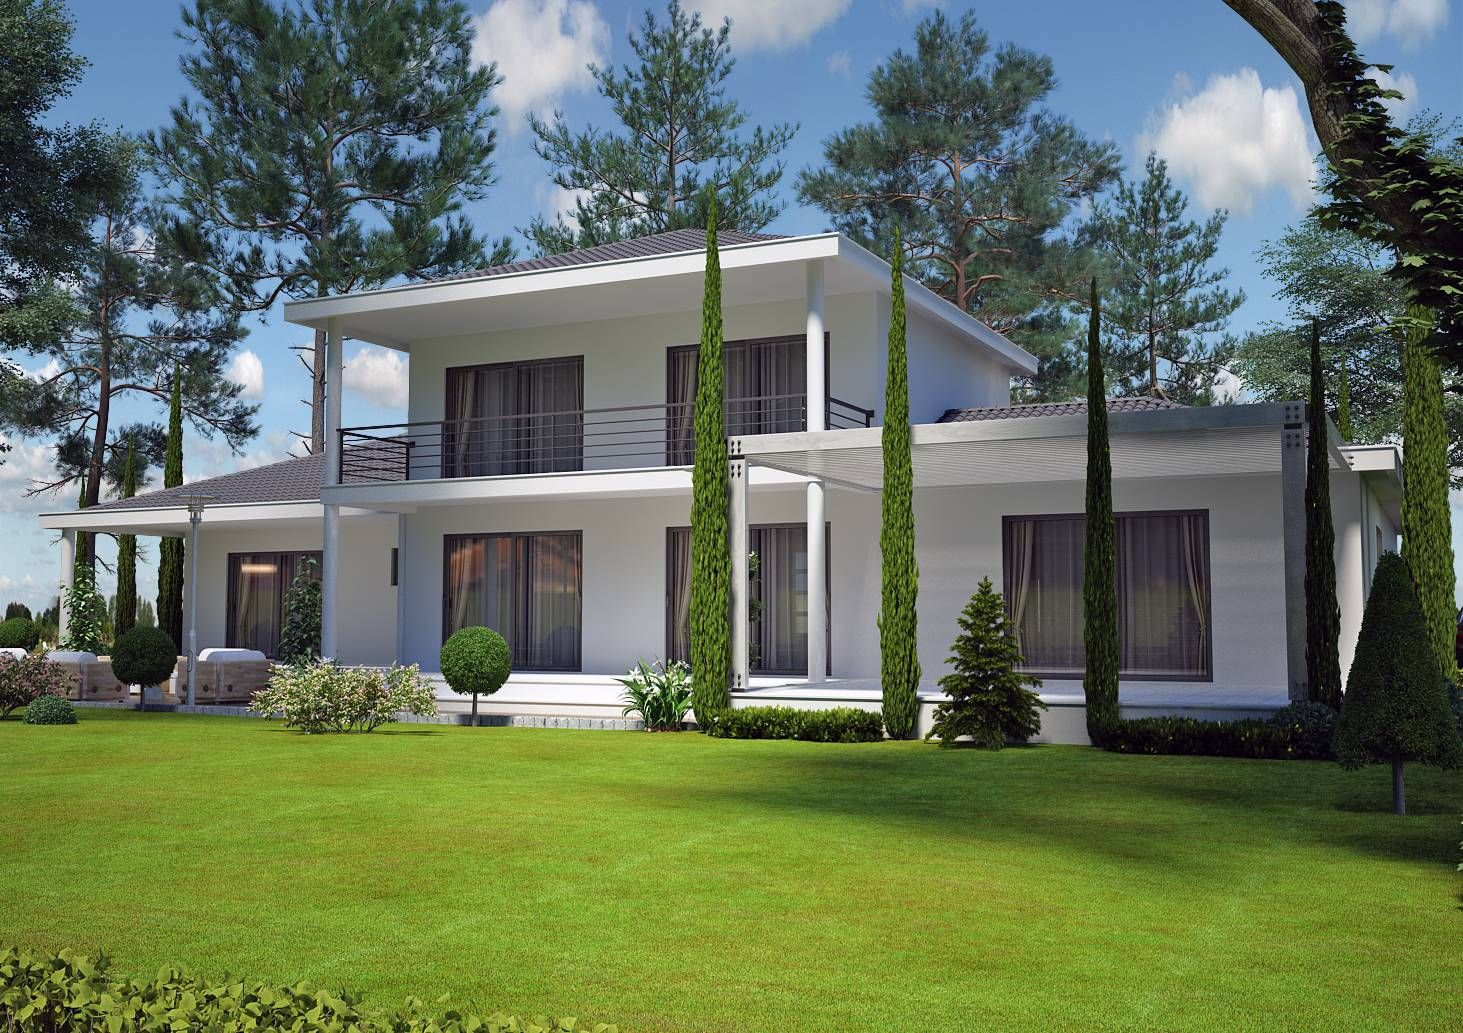 Villa contemporaine 150 m2 etage mod le pinede salon for Plans maisons contemporaines modernes